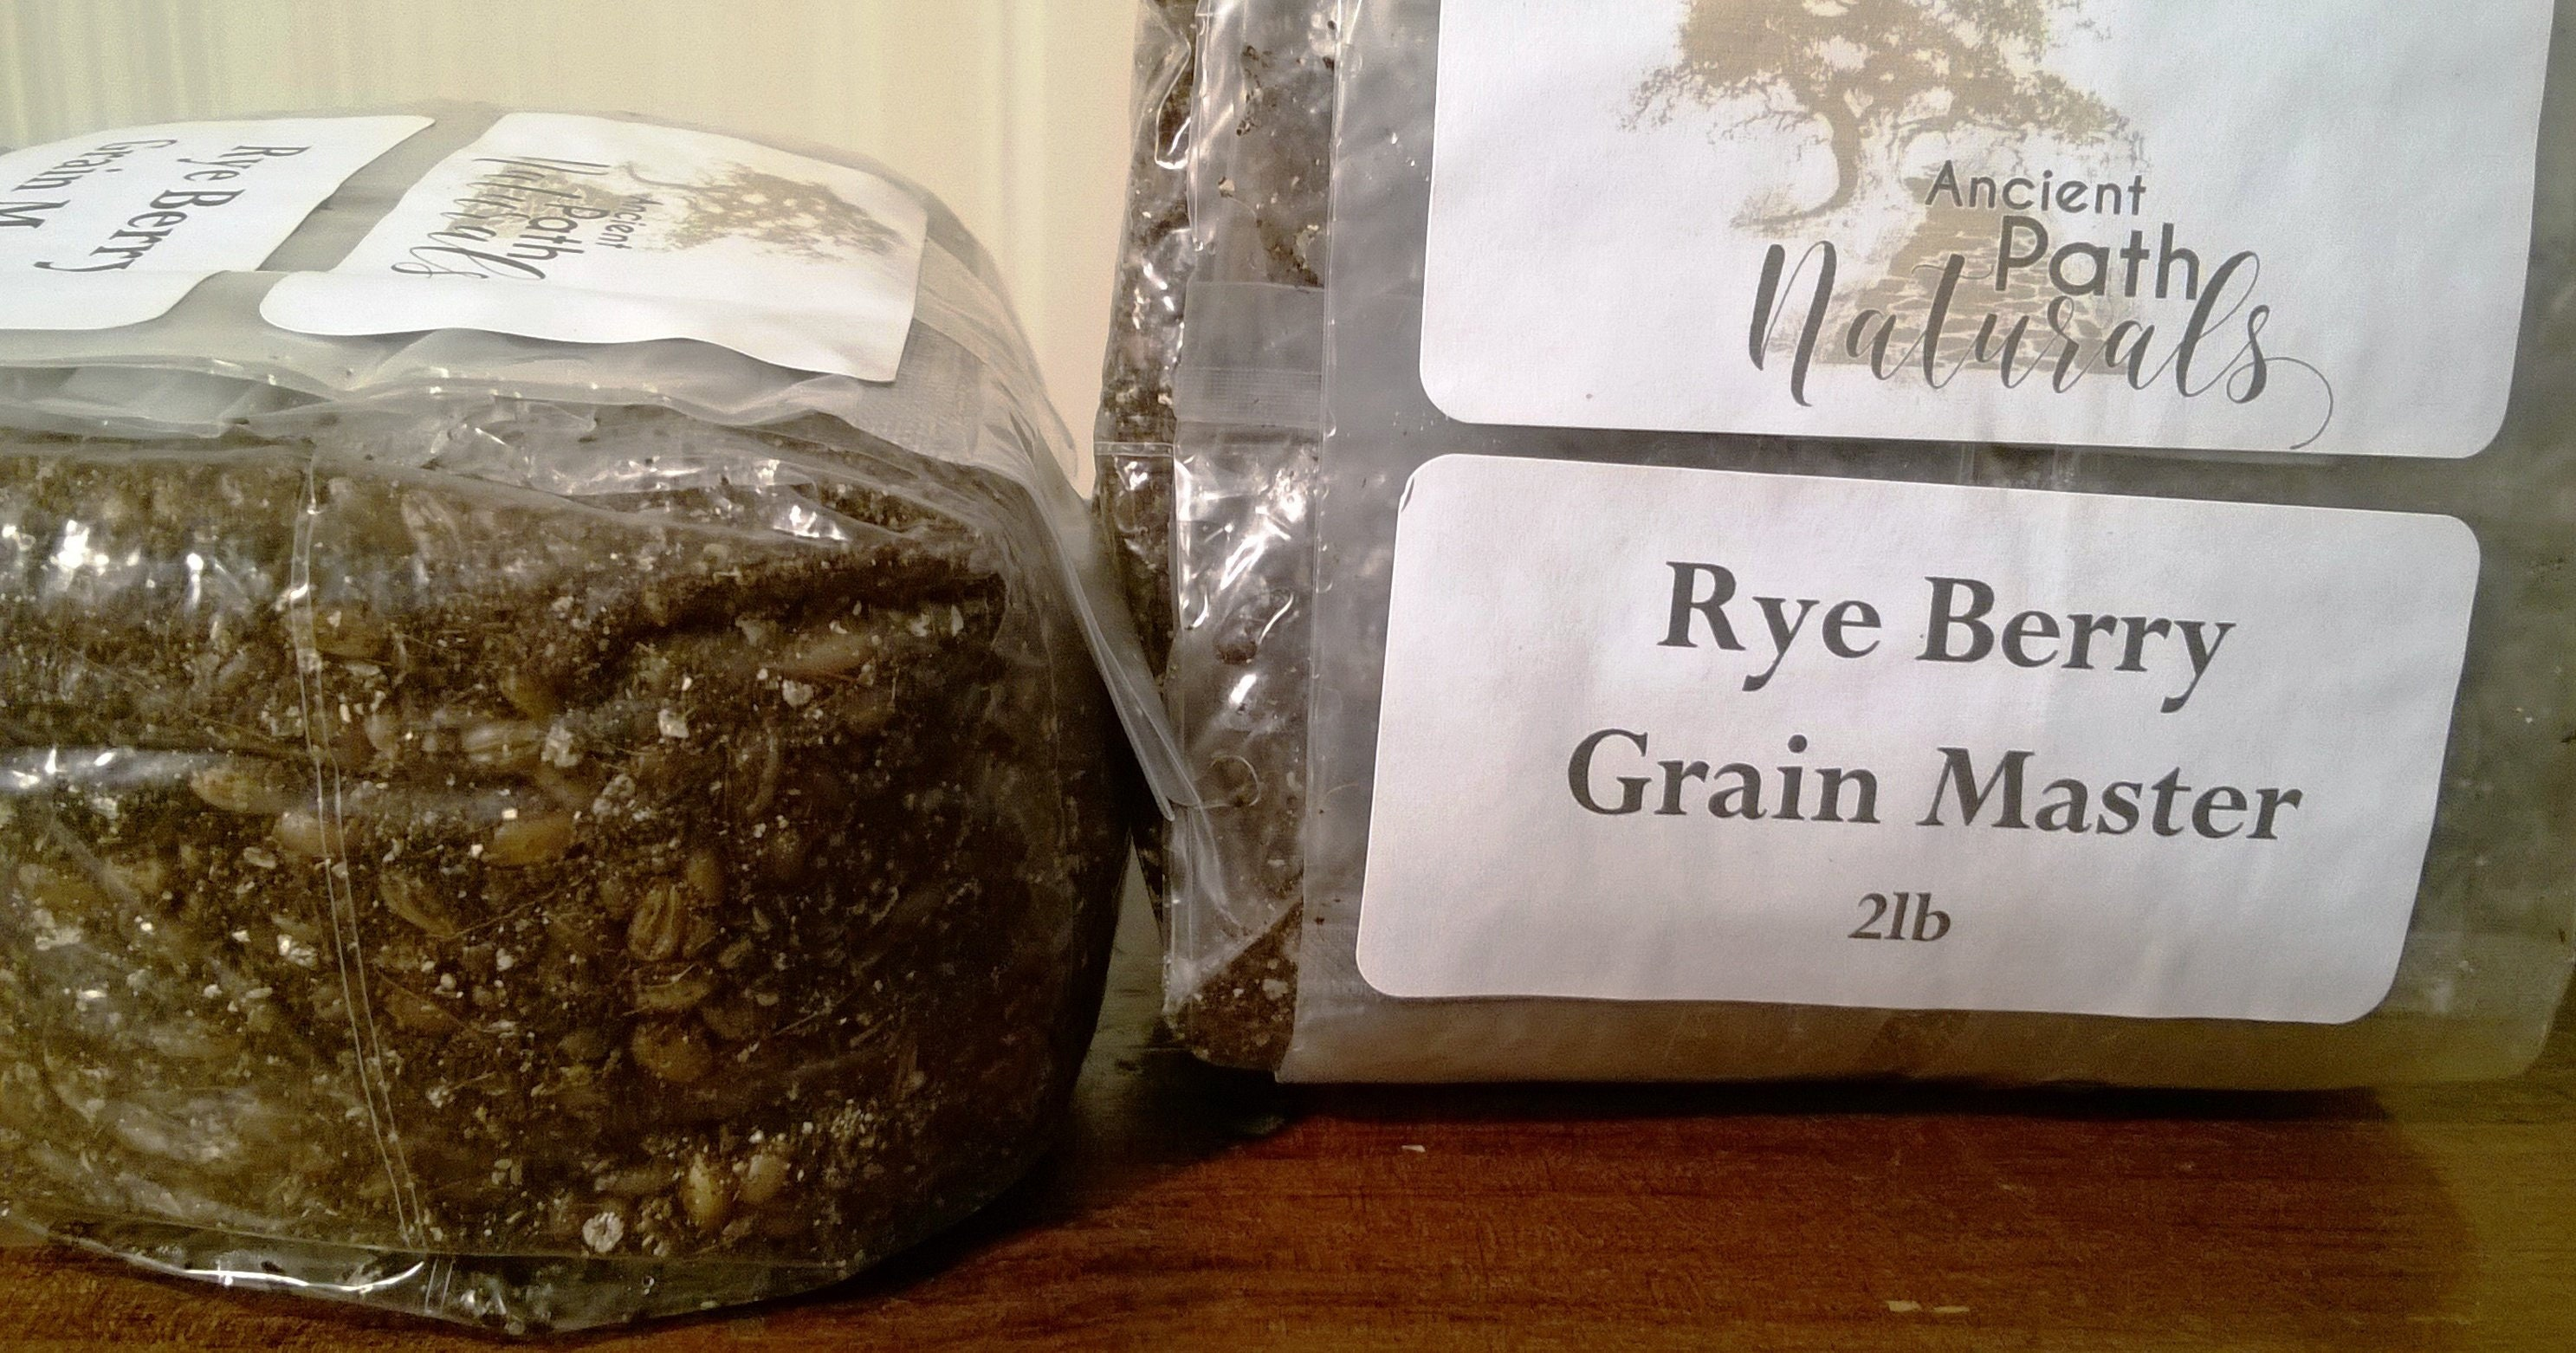 2lb x8 RYE Grain Masters Grow Bags + 1 Rye & 1 Casing Free * Grain Spawn *  Sterilized Ready to Inoculate, Just Add Spores! FREE SHIPPING!